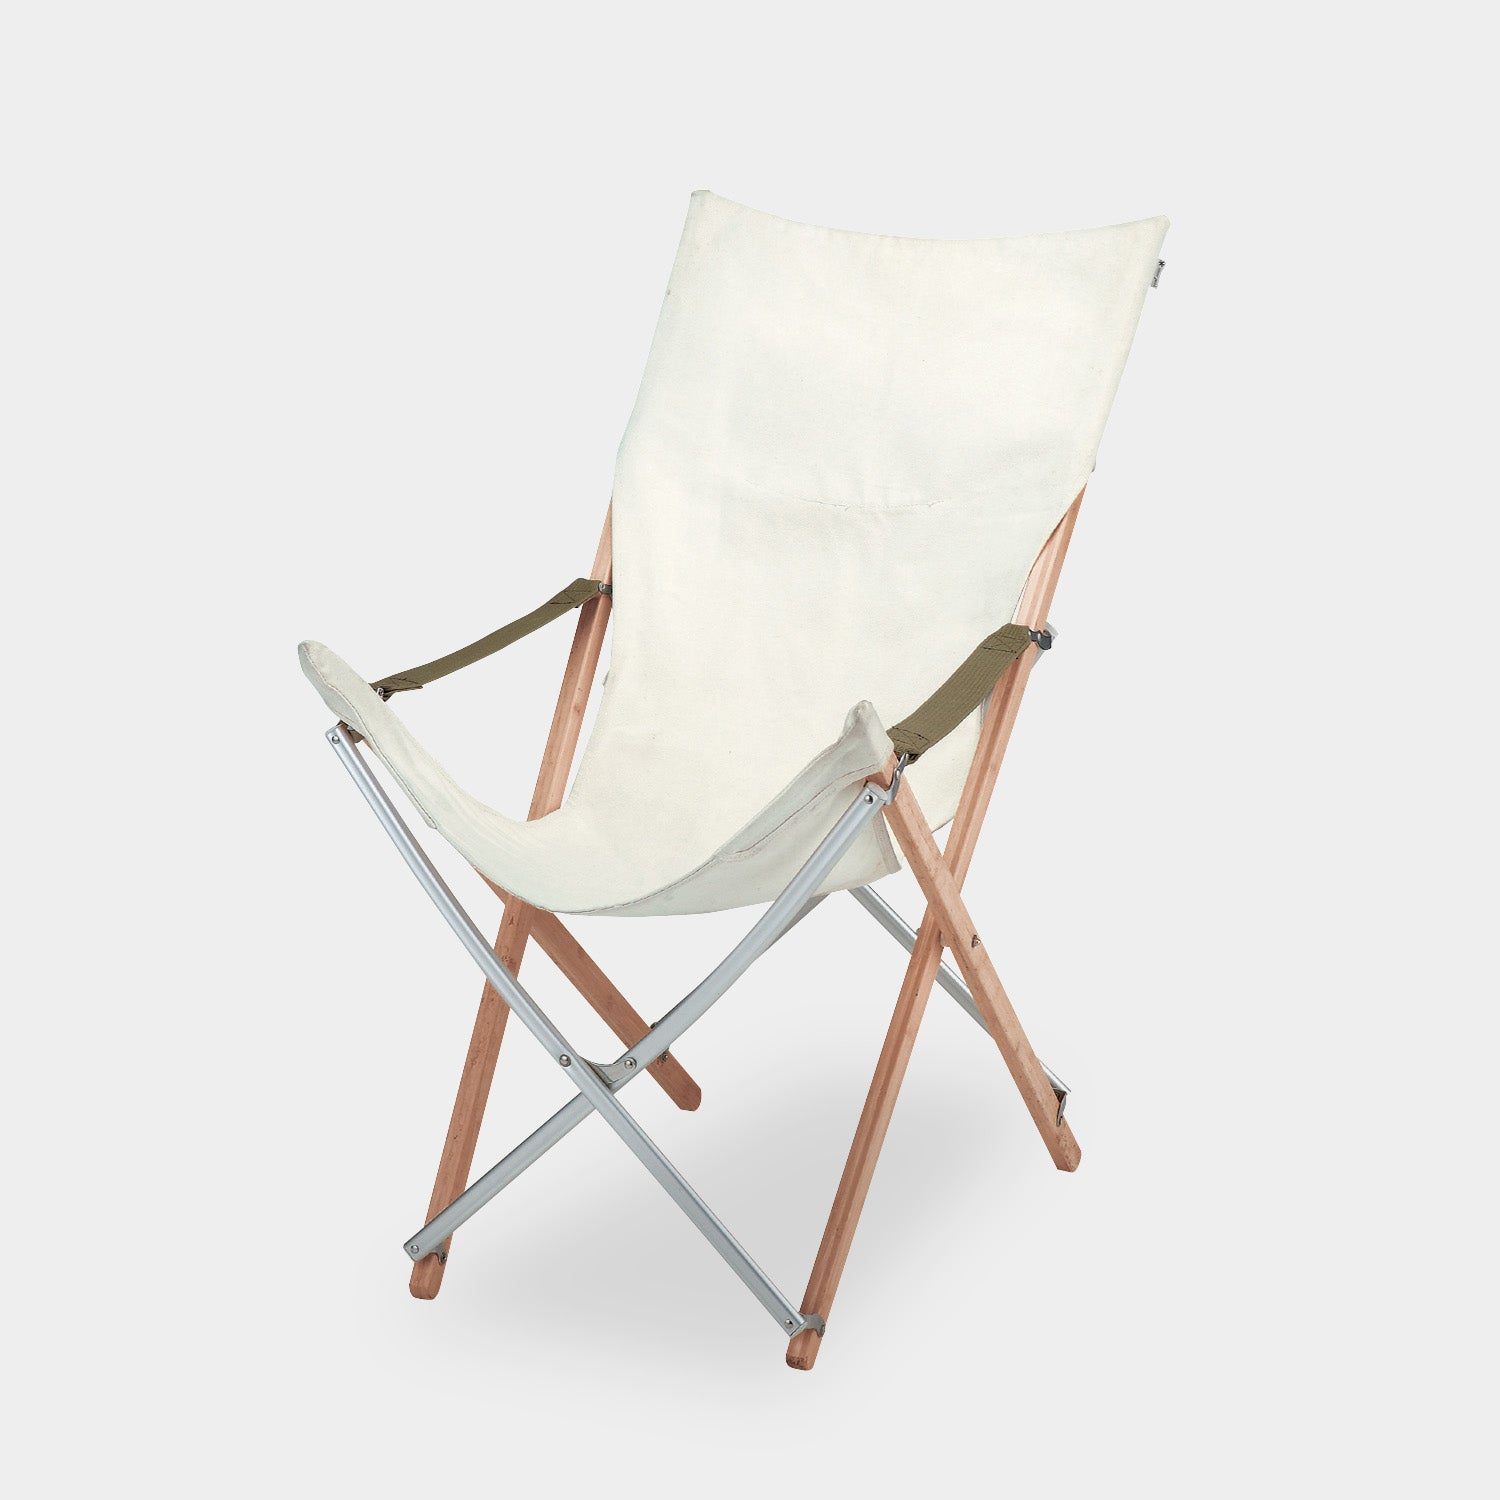 Snow Peak Take! Bamboo Chair - Long